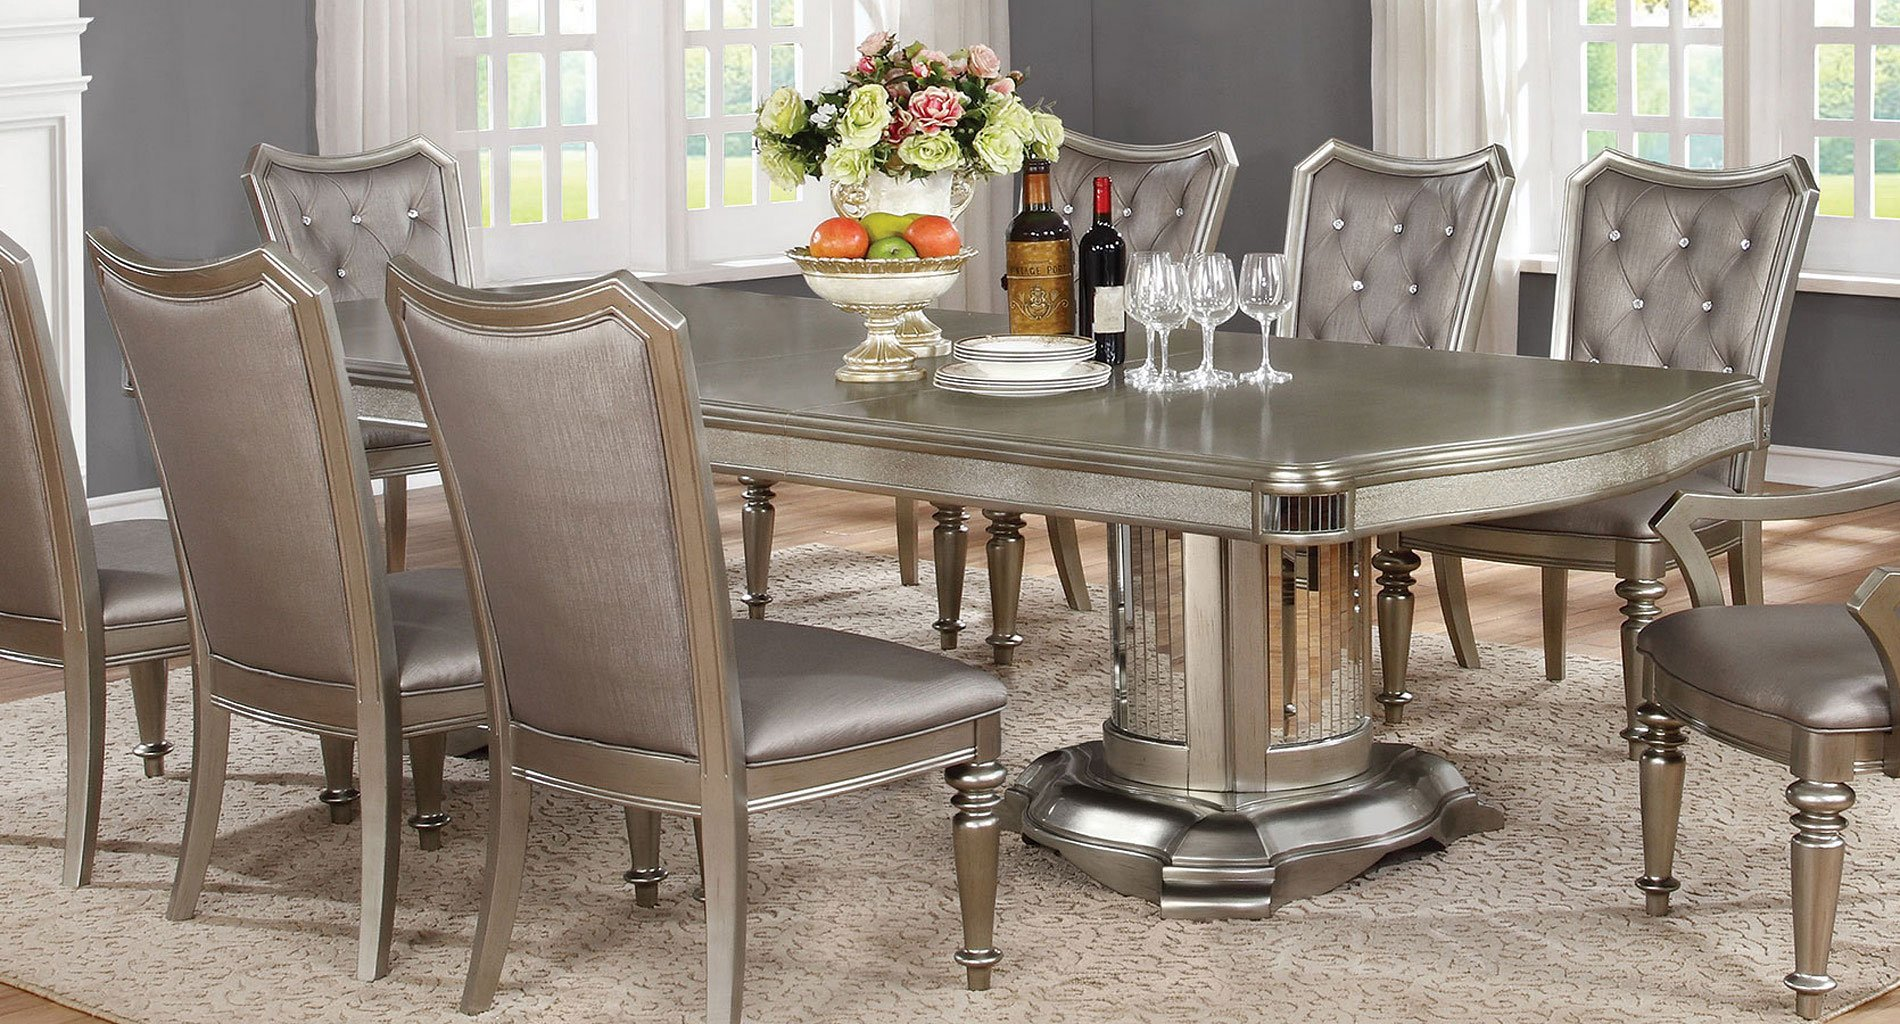 Bling Game Rectangular Dining Table Dining Tables